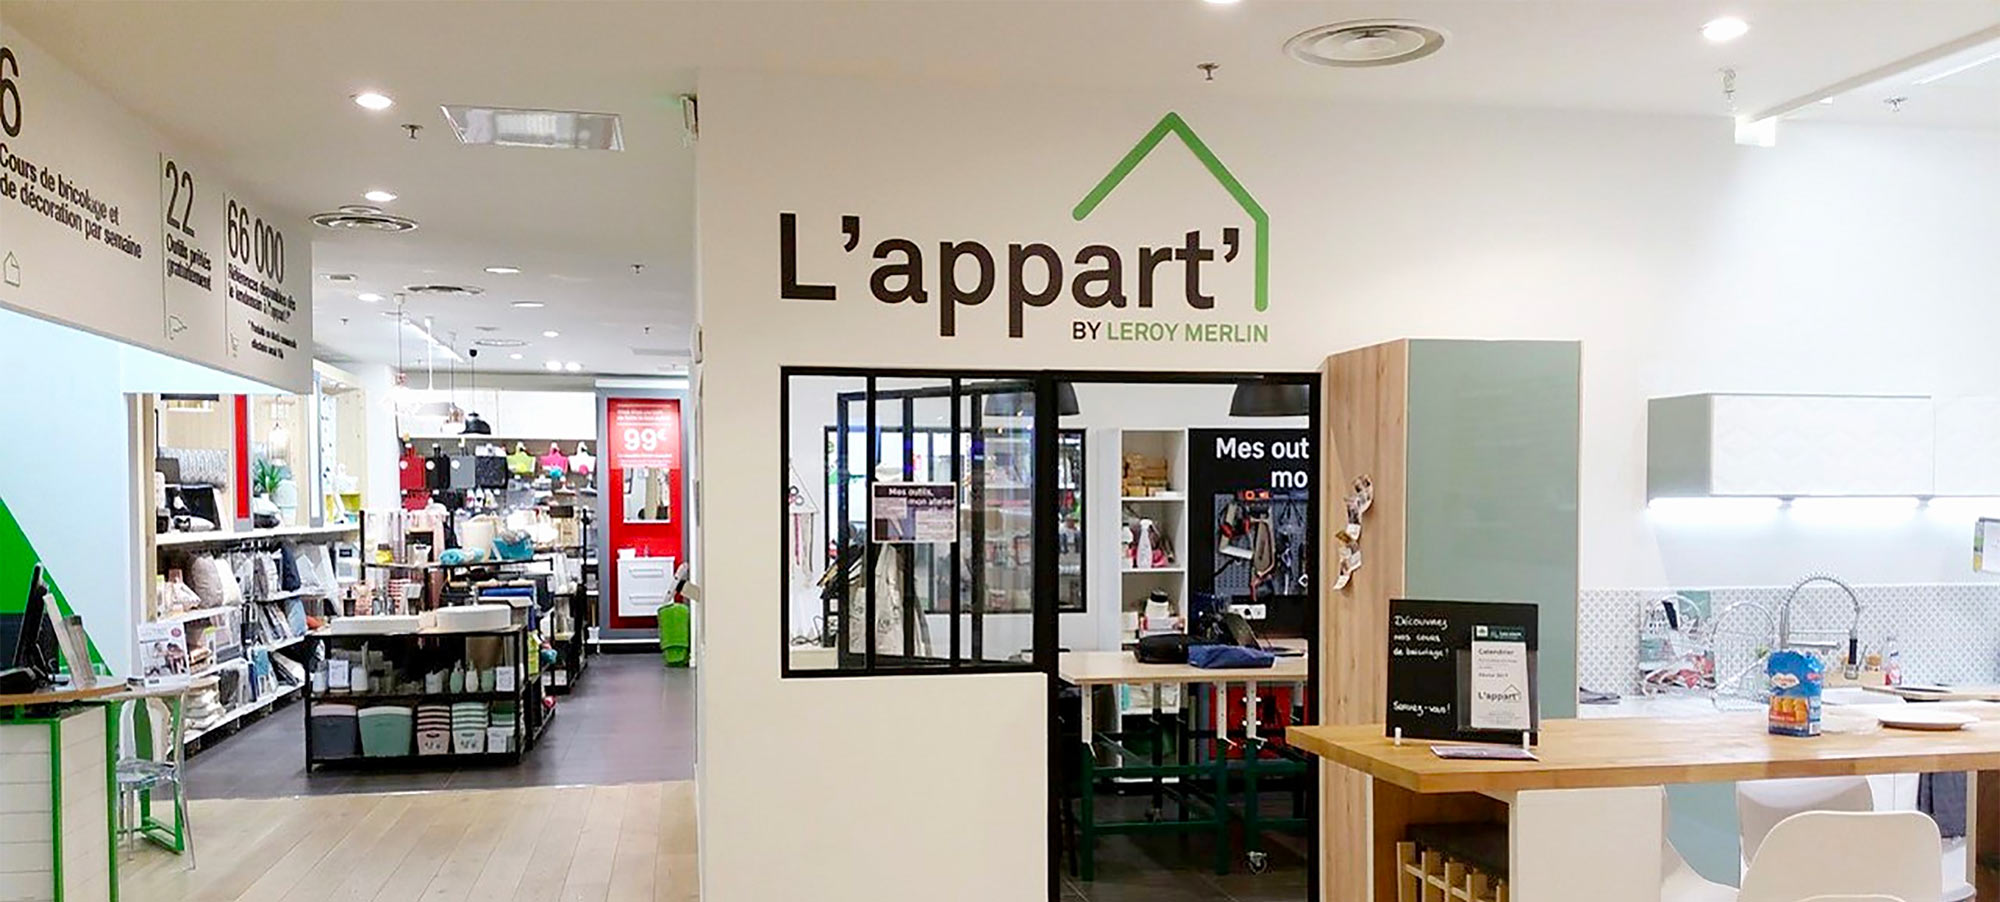 Leroy Merlin Magasin En France Quotatis Quotatis à L Appart De Leroy Merlin Batignolles